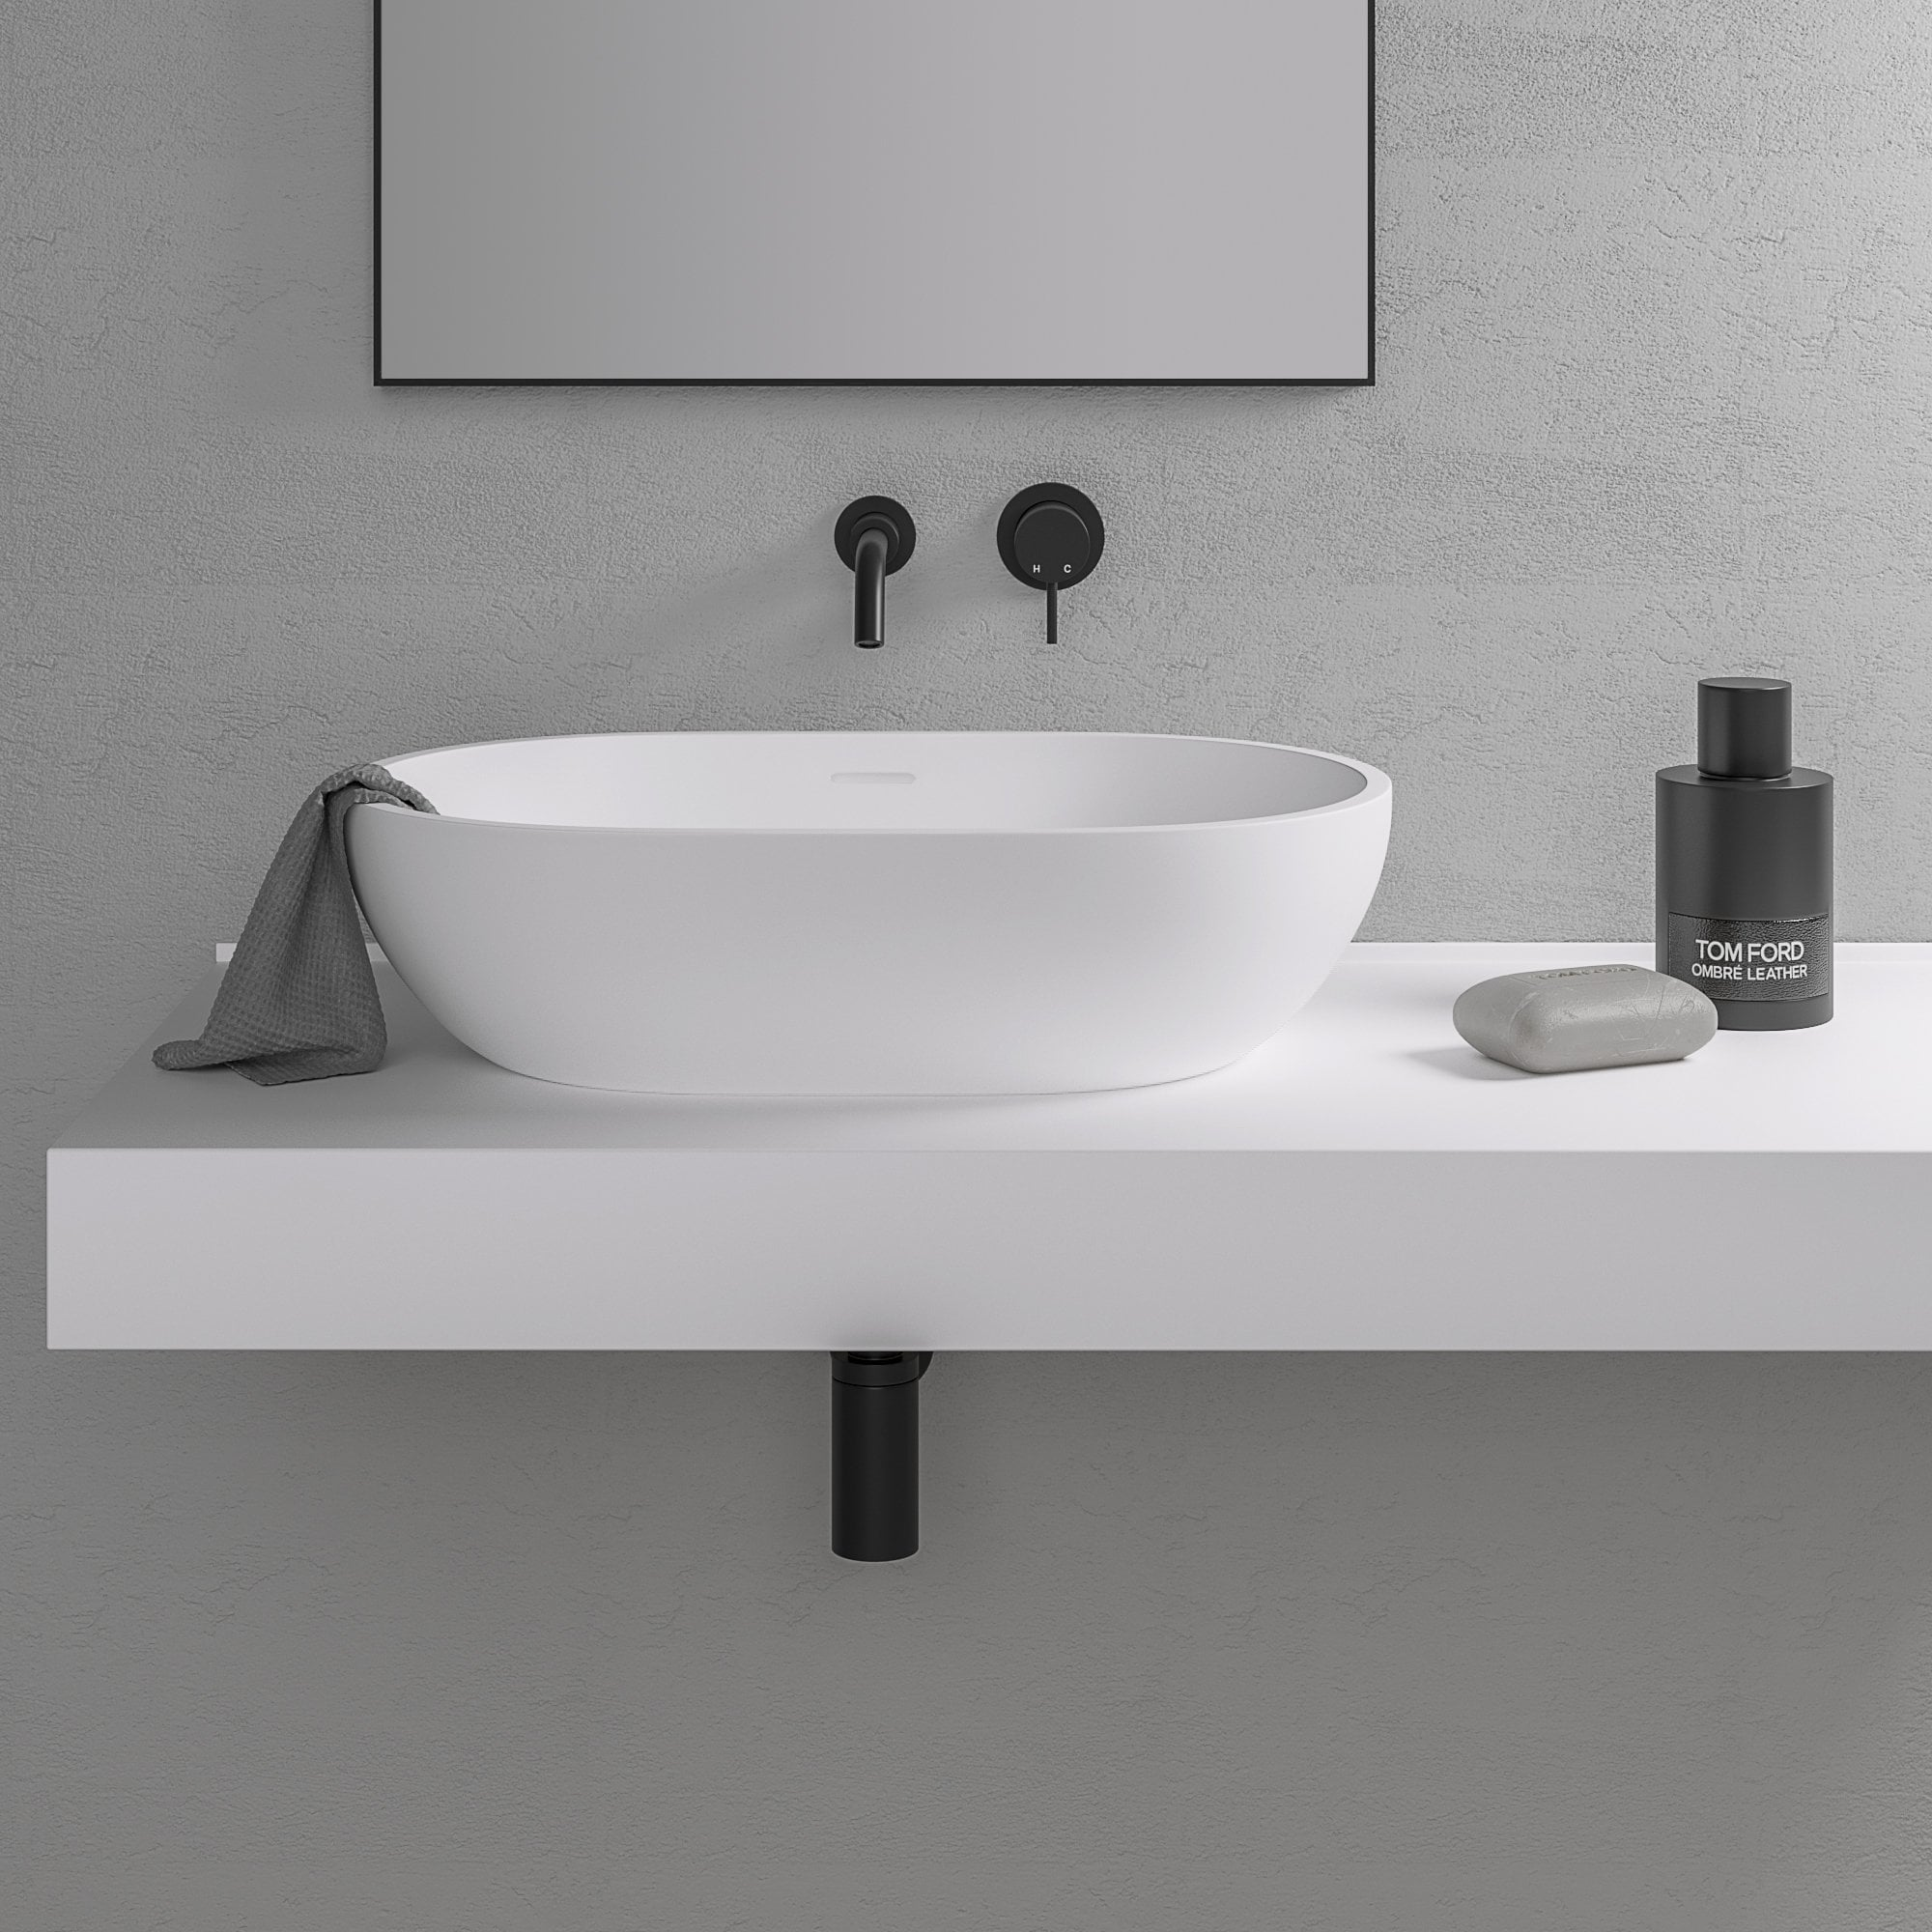 Fantastic Lusso Stone Picasso Stone Resin Counter Top Basin 580 Download Free Architecture Designs Viewormadebymaigaardcom